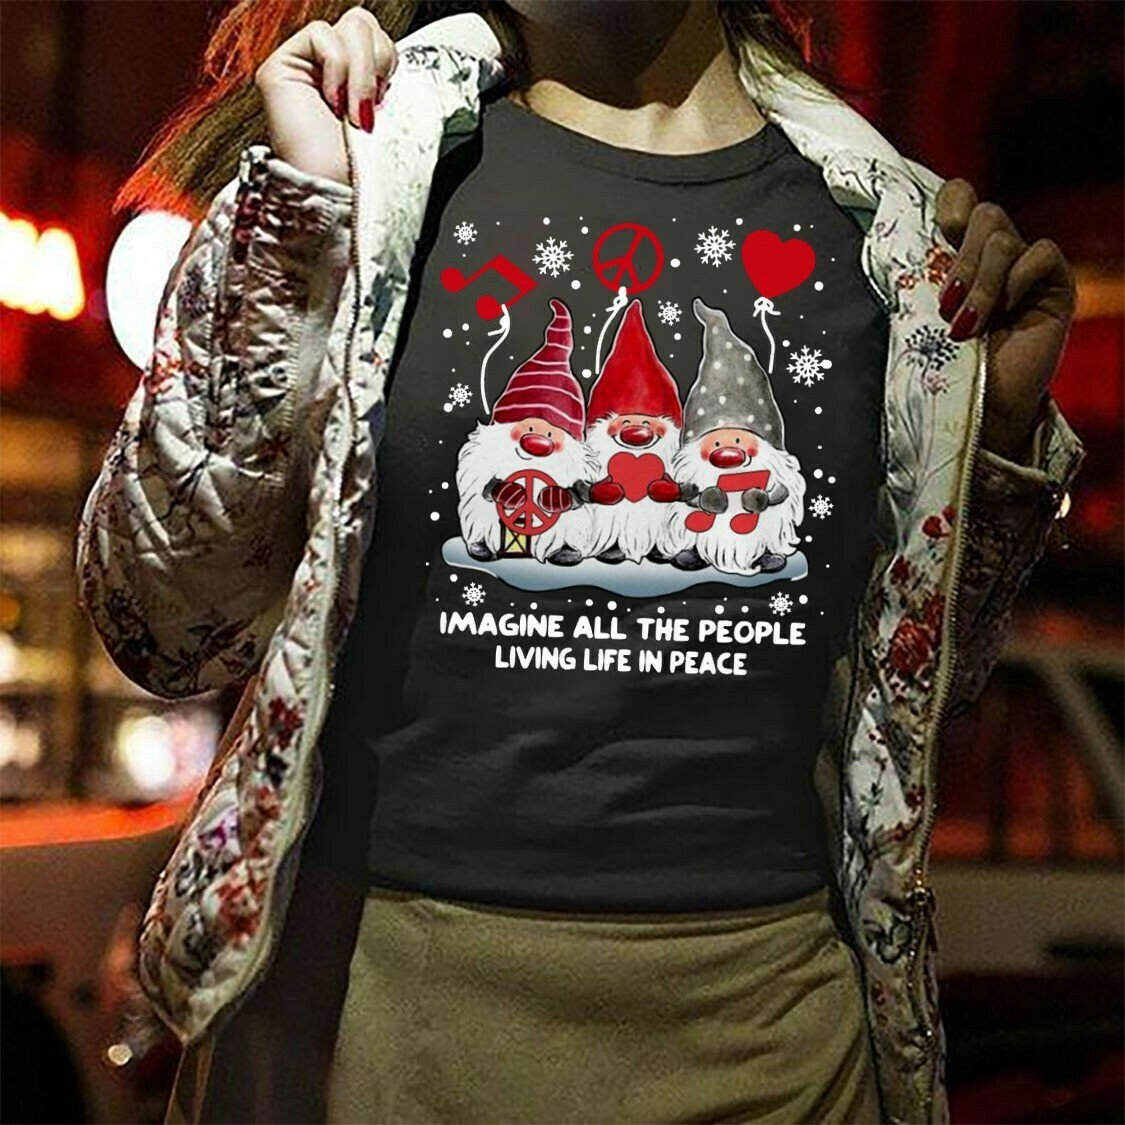 Gnomies imagine all the people living life in peace Christmas,Gnomie Christmas Elf,Gnomie Elves Three Gnomes Tee T-Shirt Gifts Long Sleeve Sweatshirt Hoodie Jolly Family Gifts